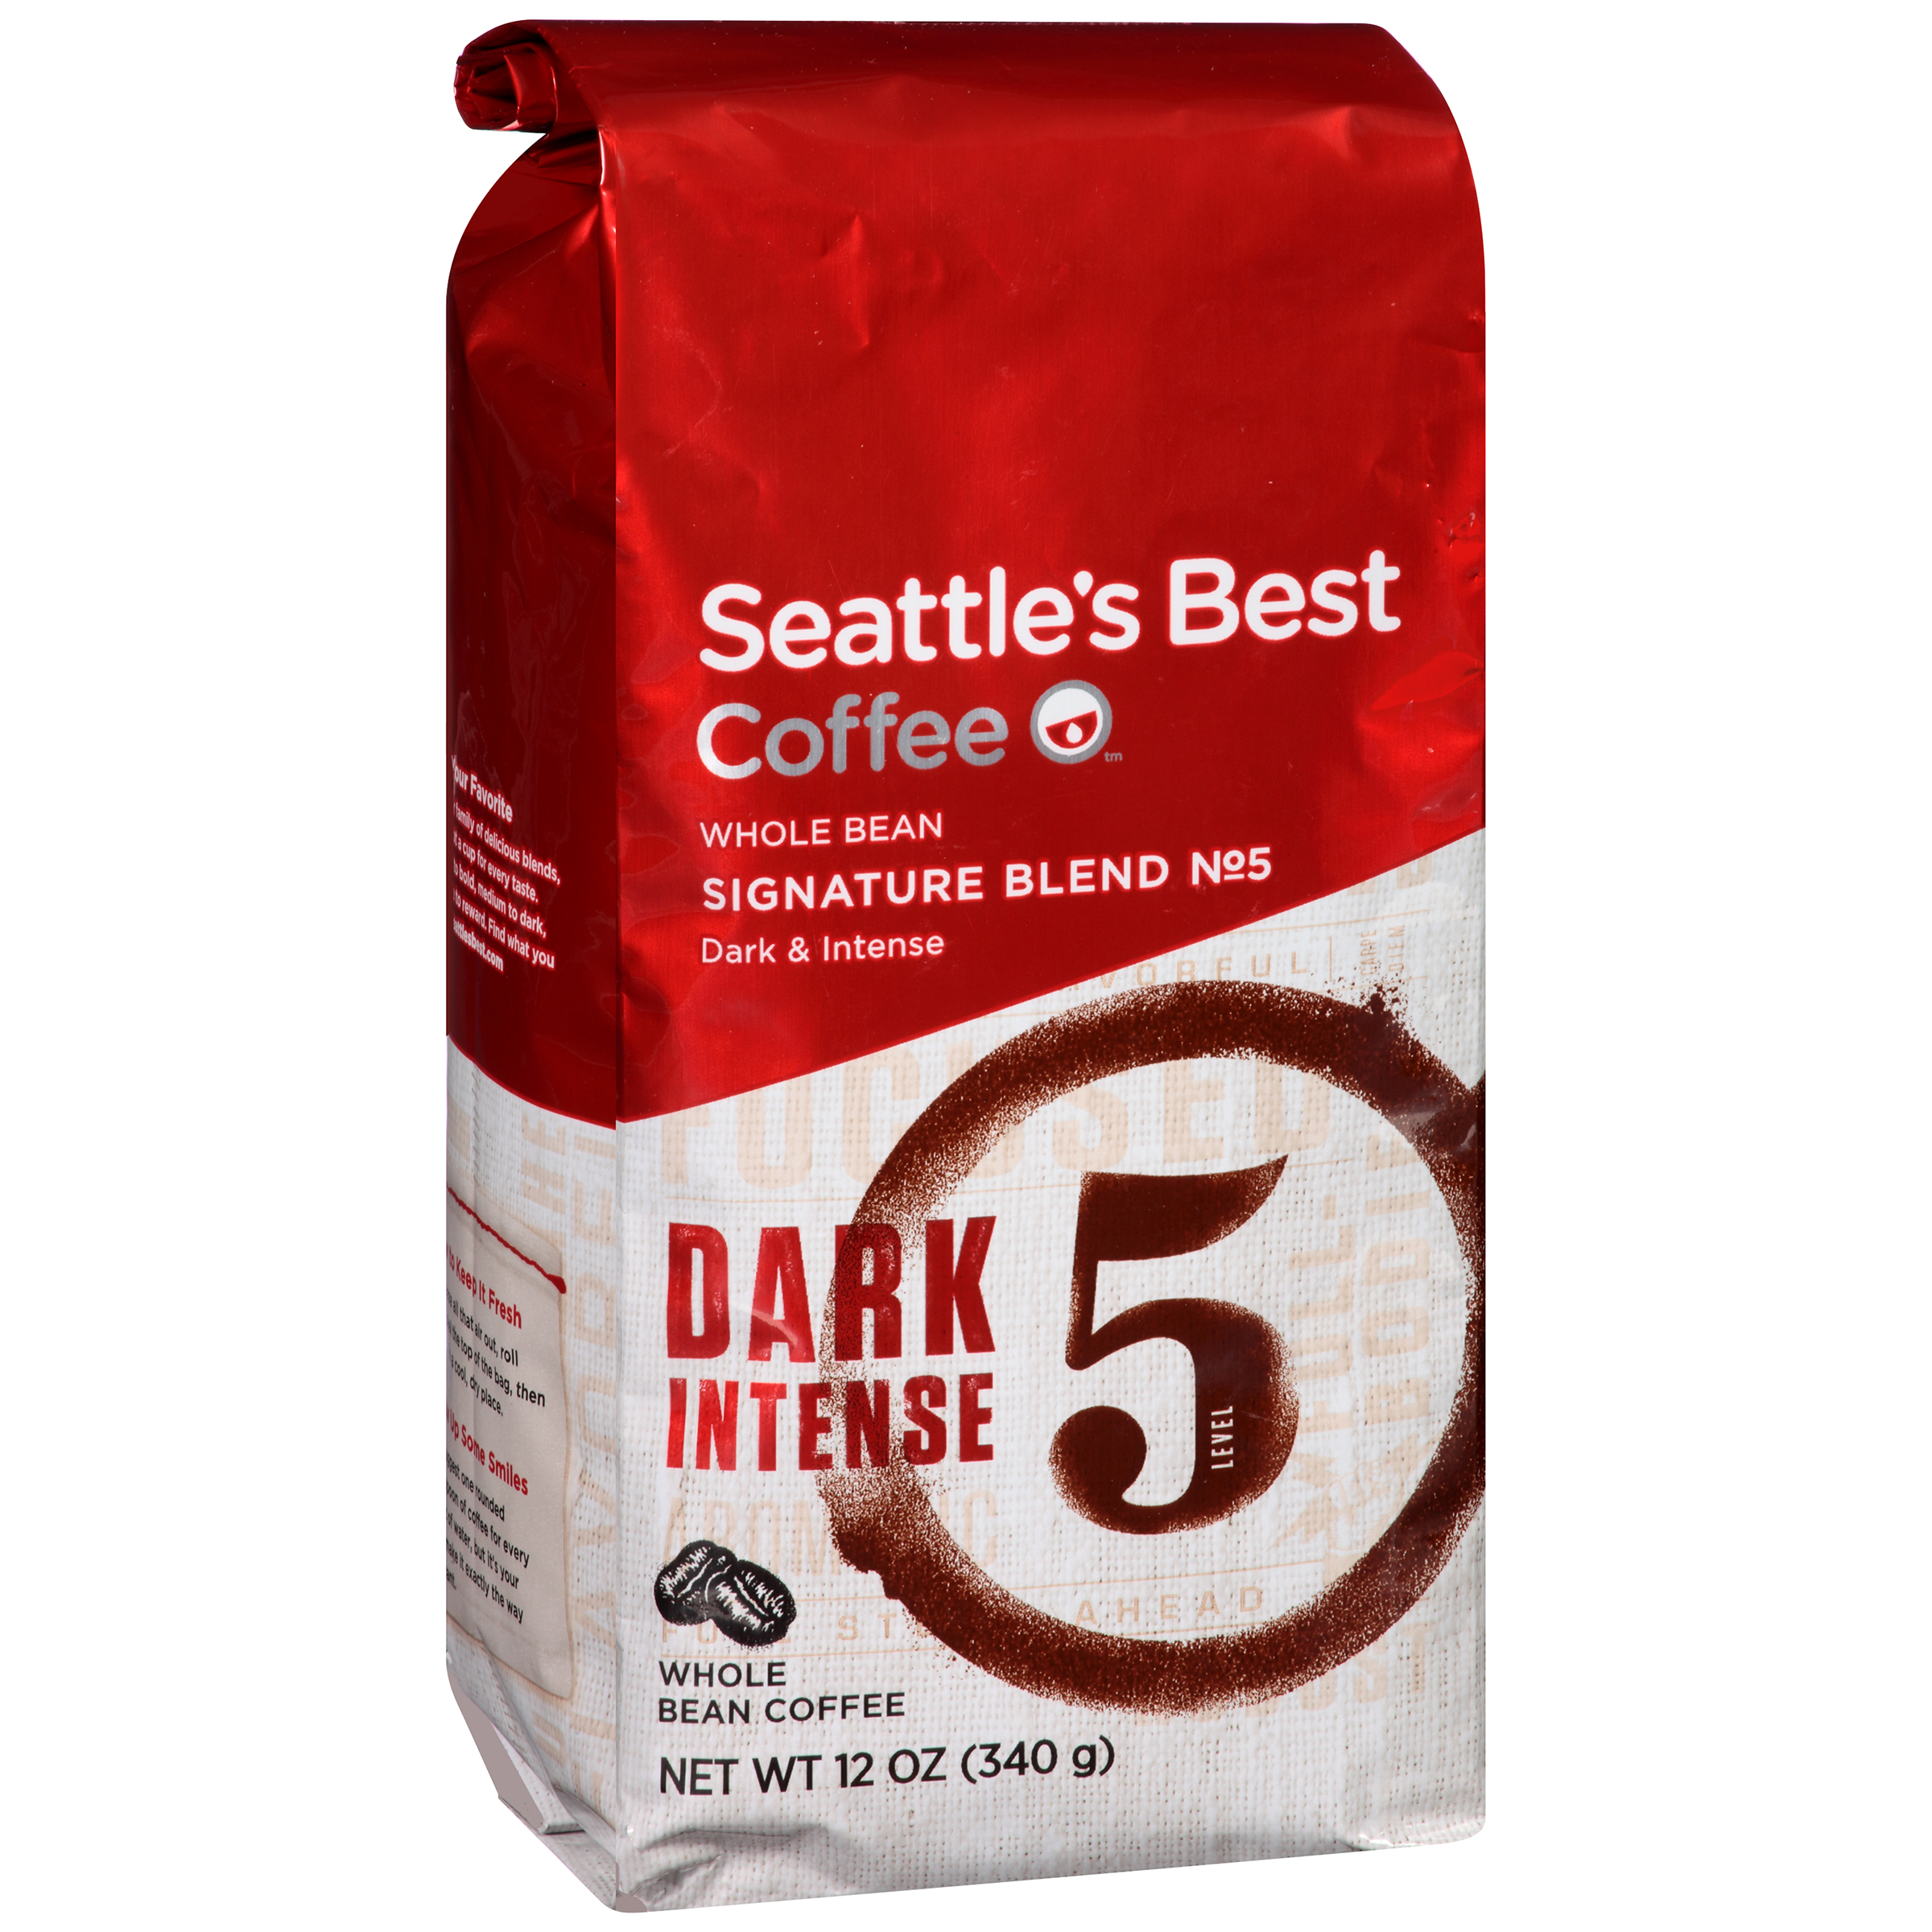 Seattle's Best Coffee��� Signature Blend No. 5 Dark & Intense Whole Bean Coffee 12 oz. Bag